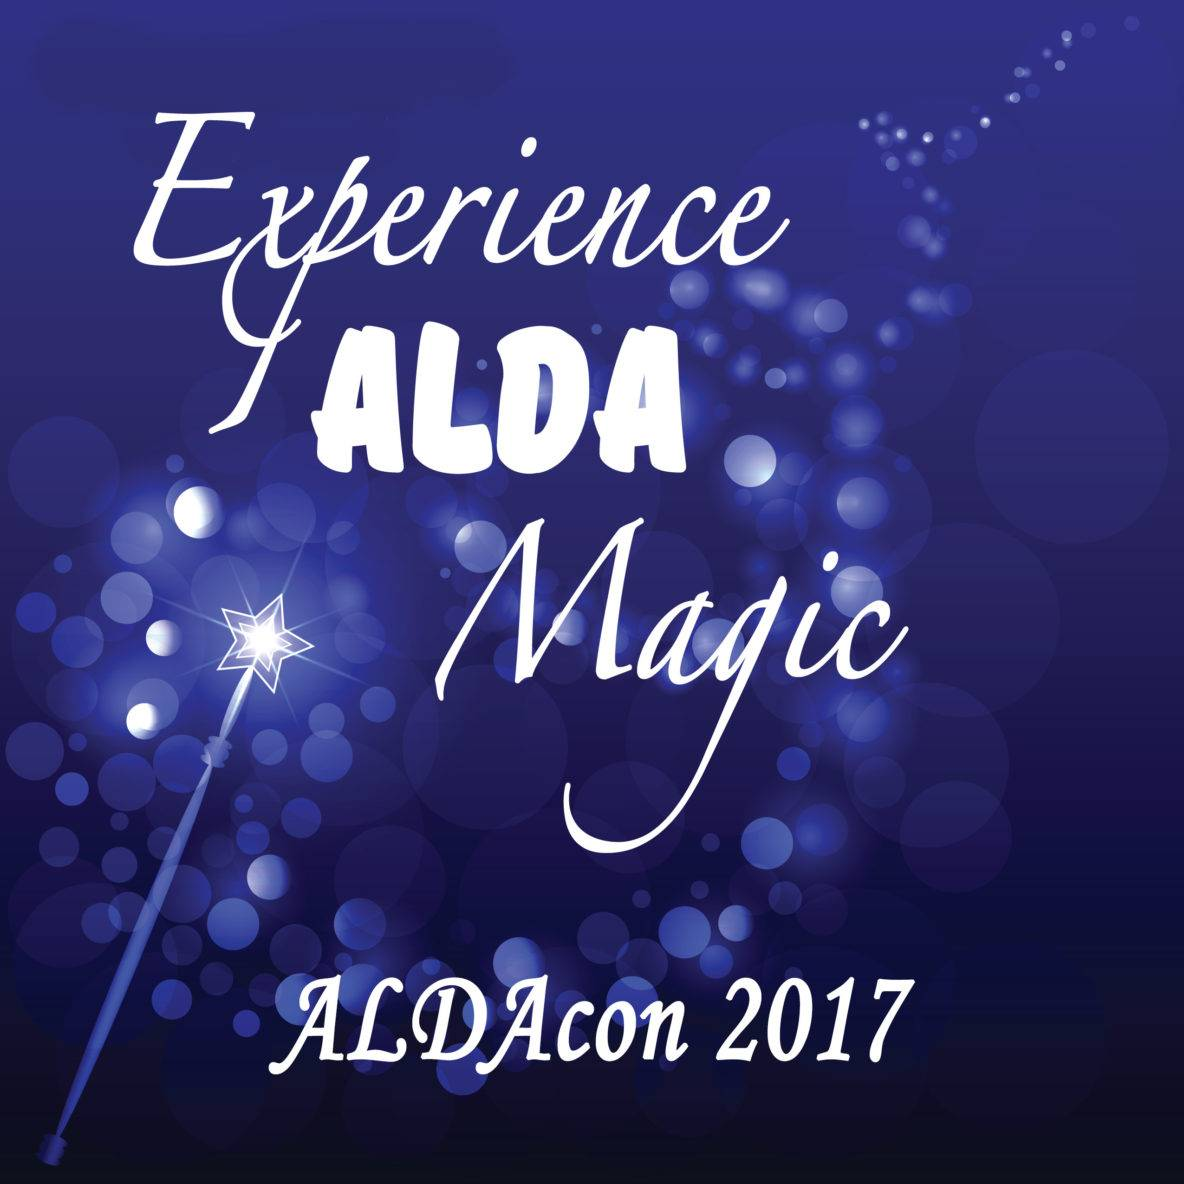 image of experience alda magic